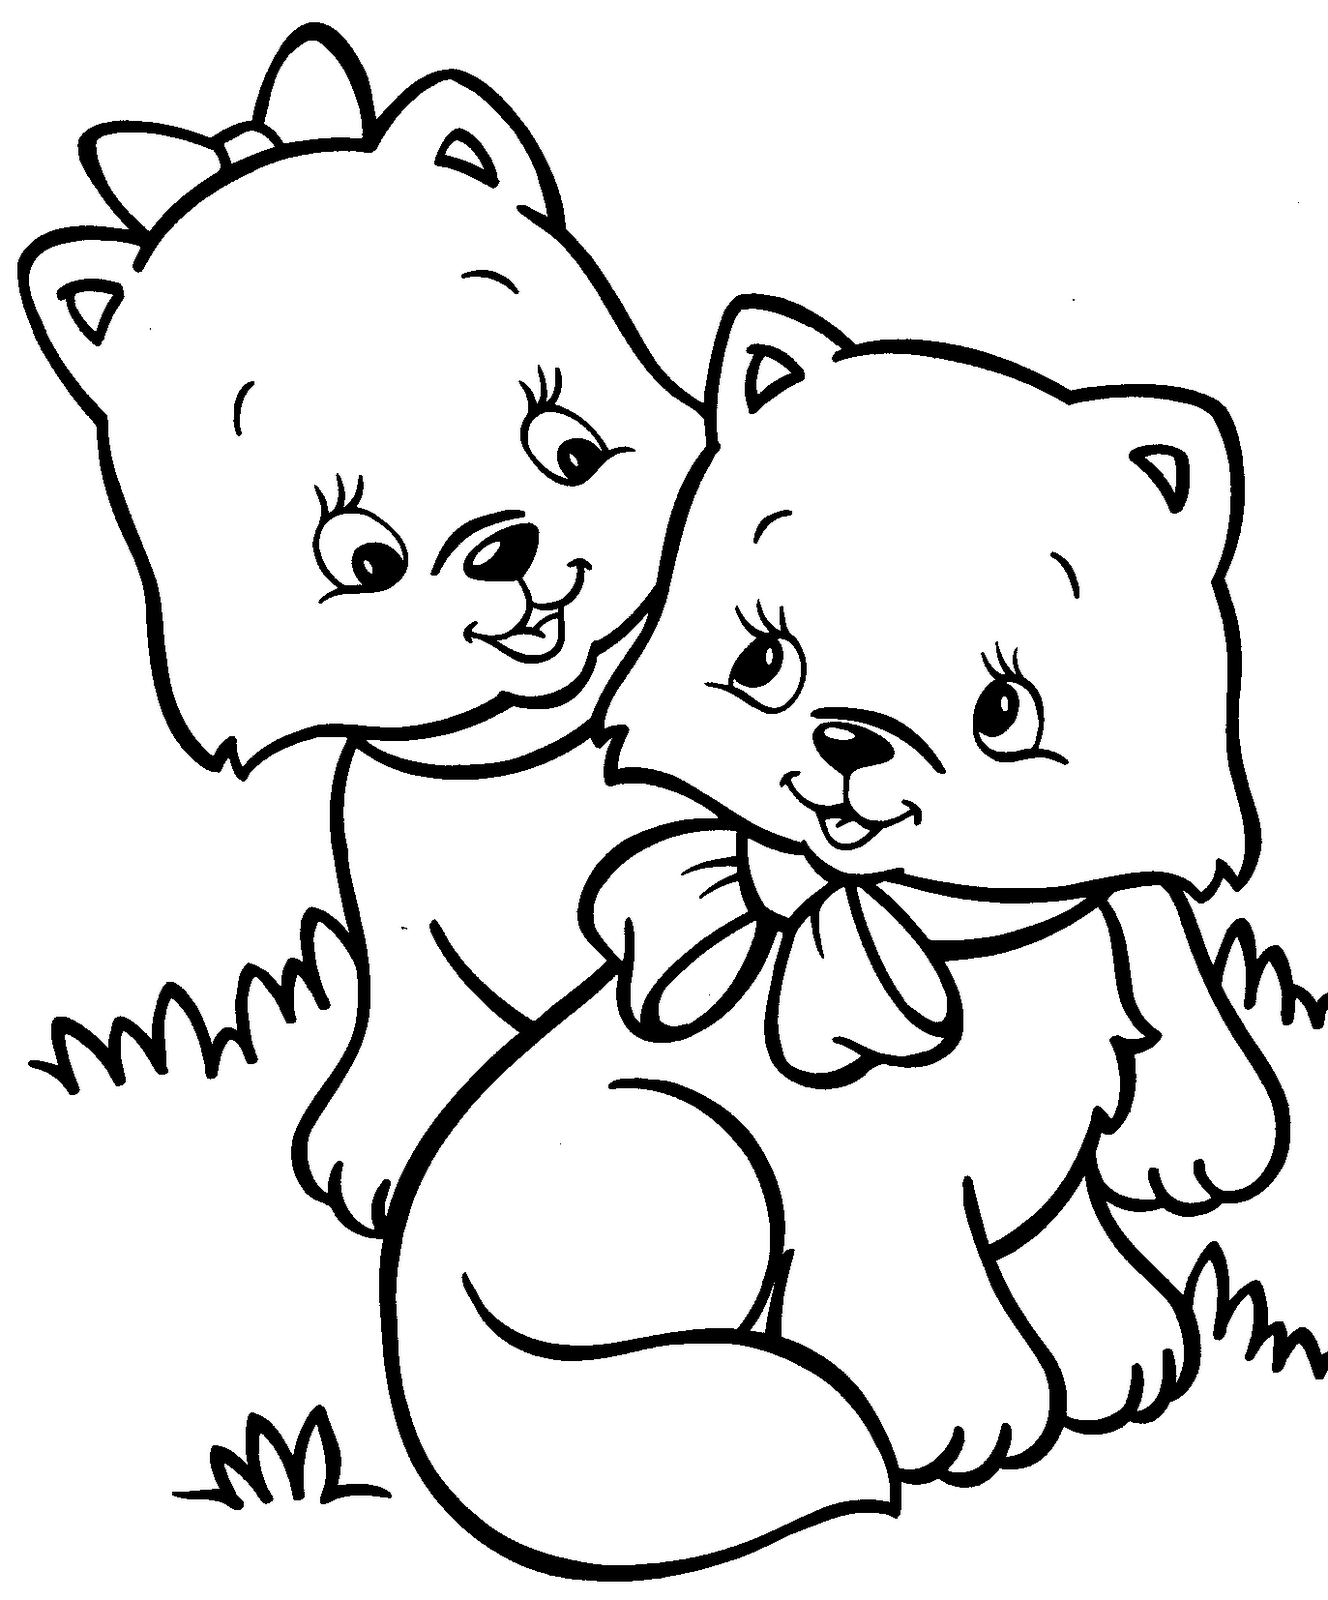 kitty cat pictures to color kitten coloring pages best coloring pages for kids kitty color cat pictures to